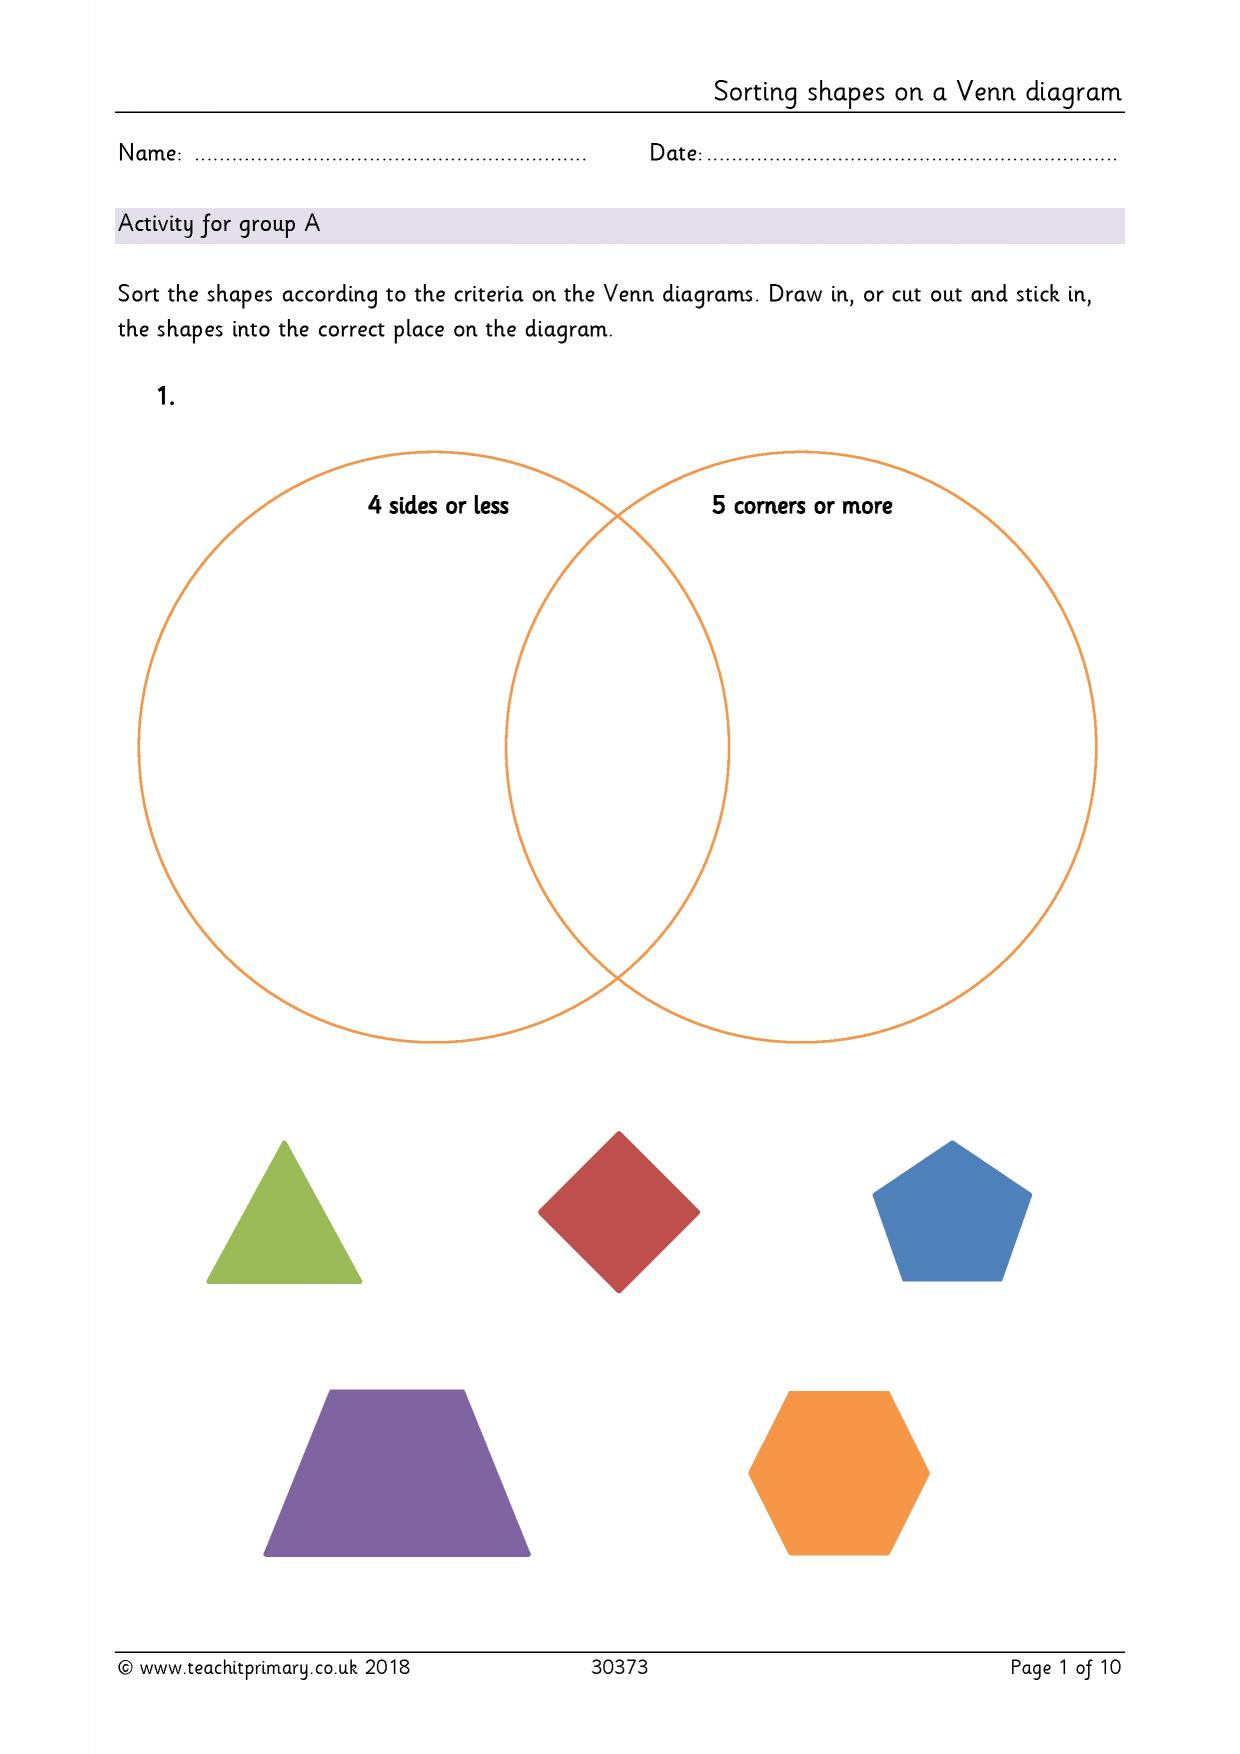 KS1 | Properties of shapes – recognizing, naming and describing